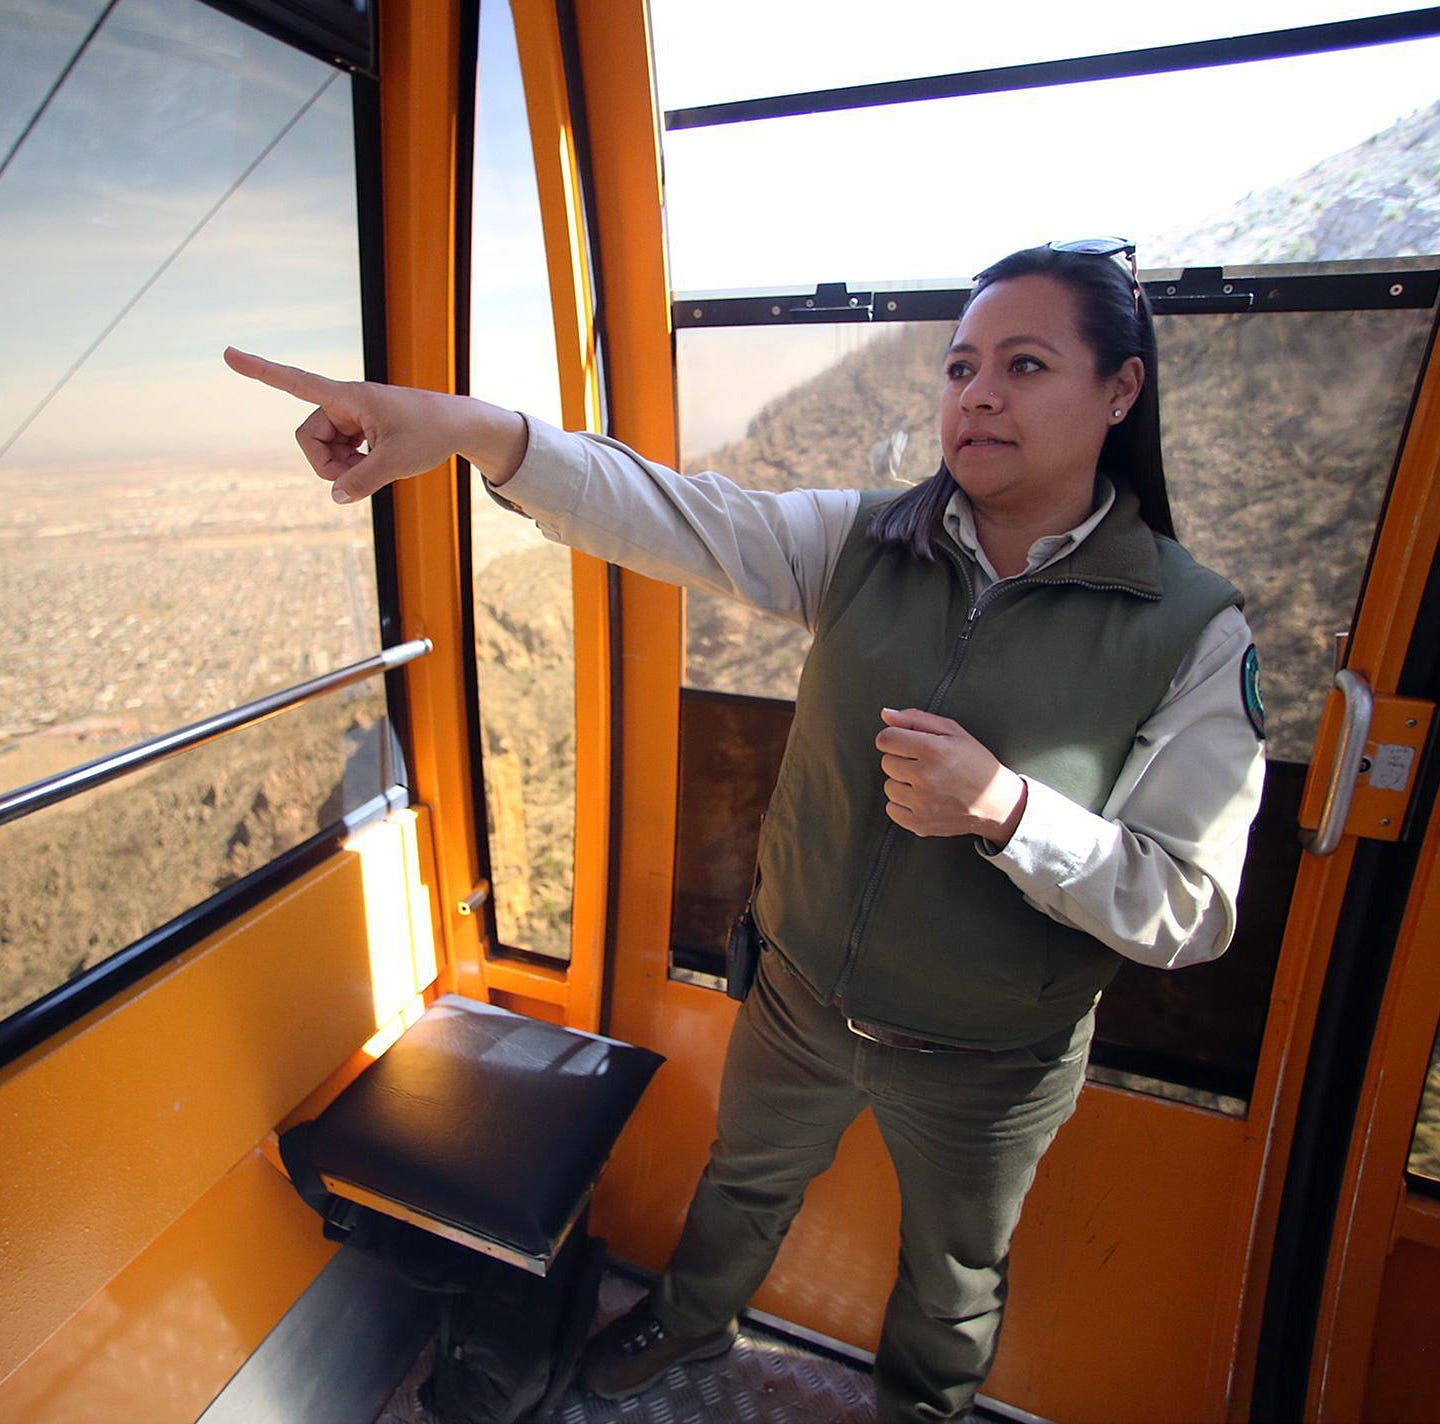 El Pasoans react with sadness to closing of Wyler Aerial Tramway